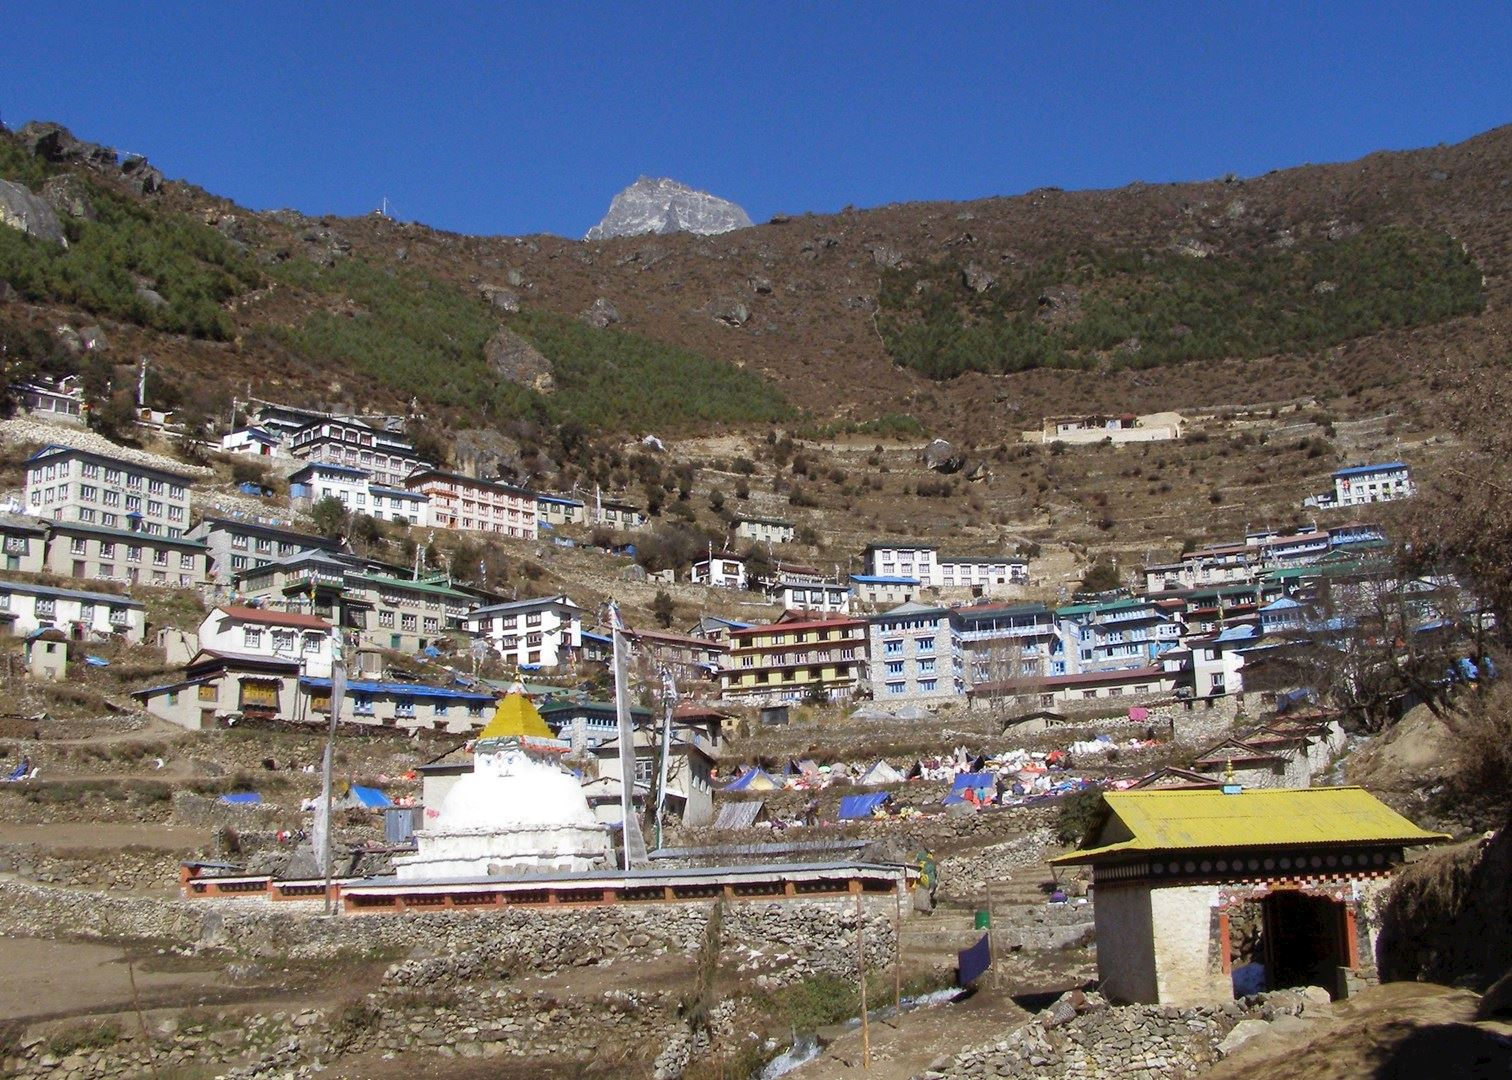 Visit Namche Bazaar on a trip to Nepal | Audley Travel